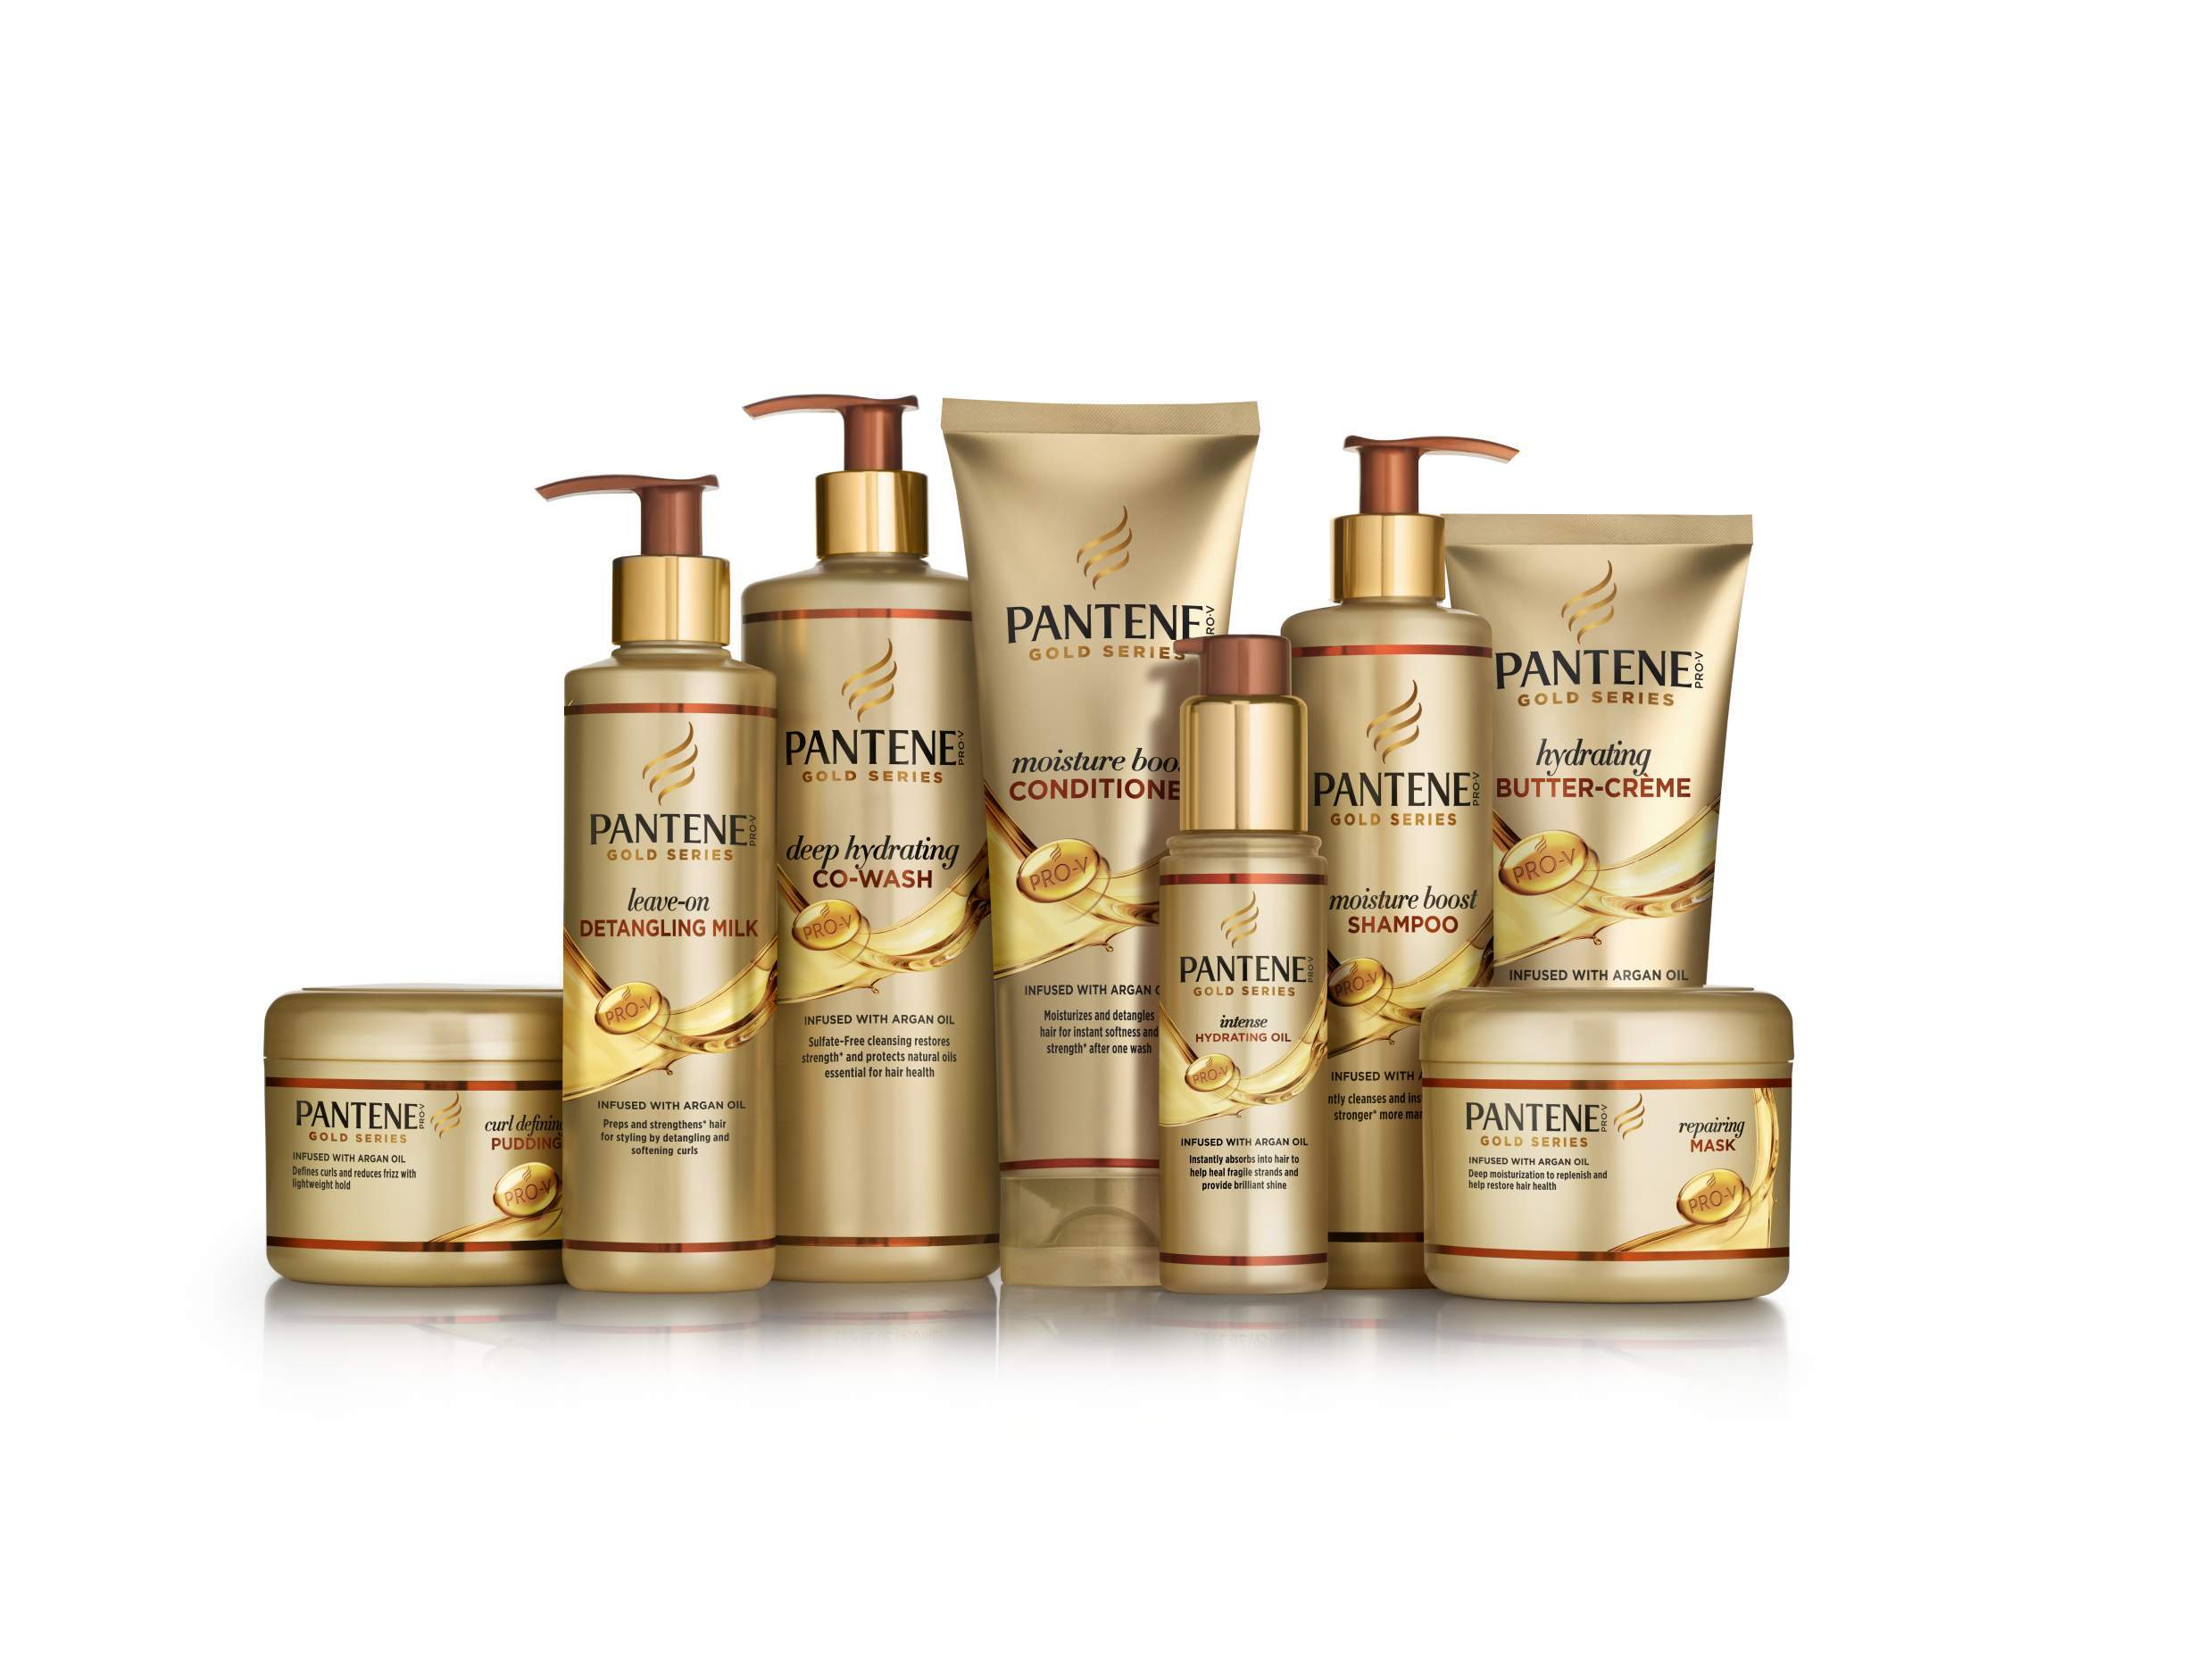 Pantene Gold Series Collection (Photo: Business Wire)